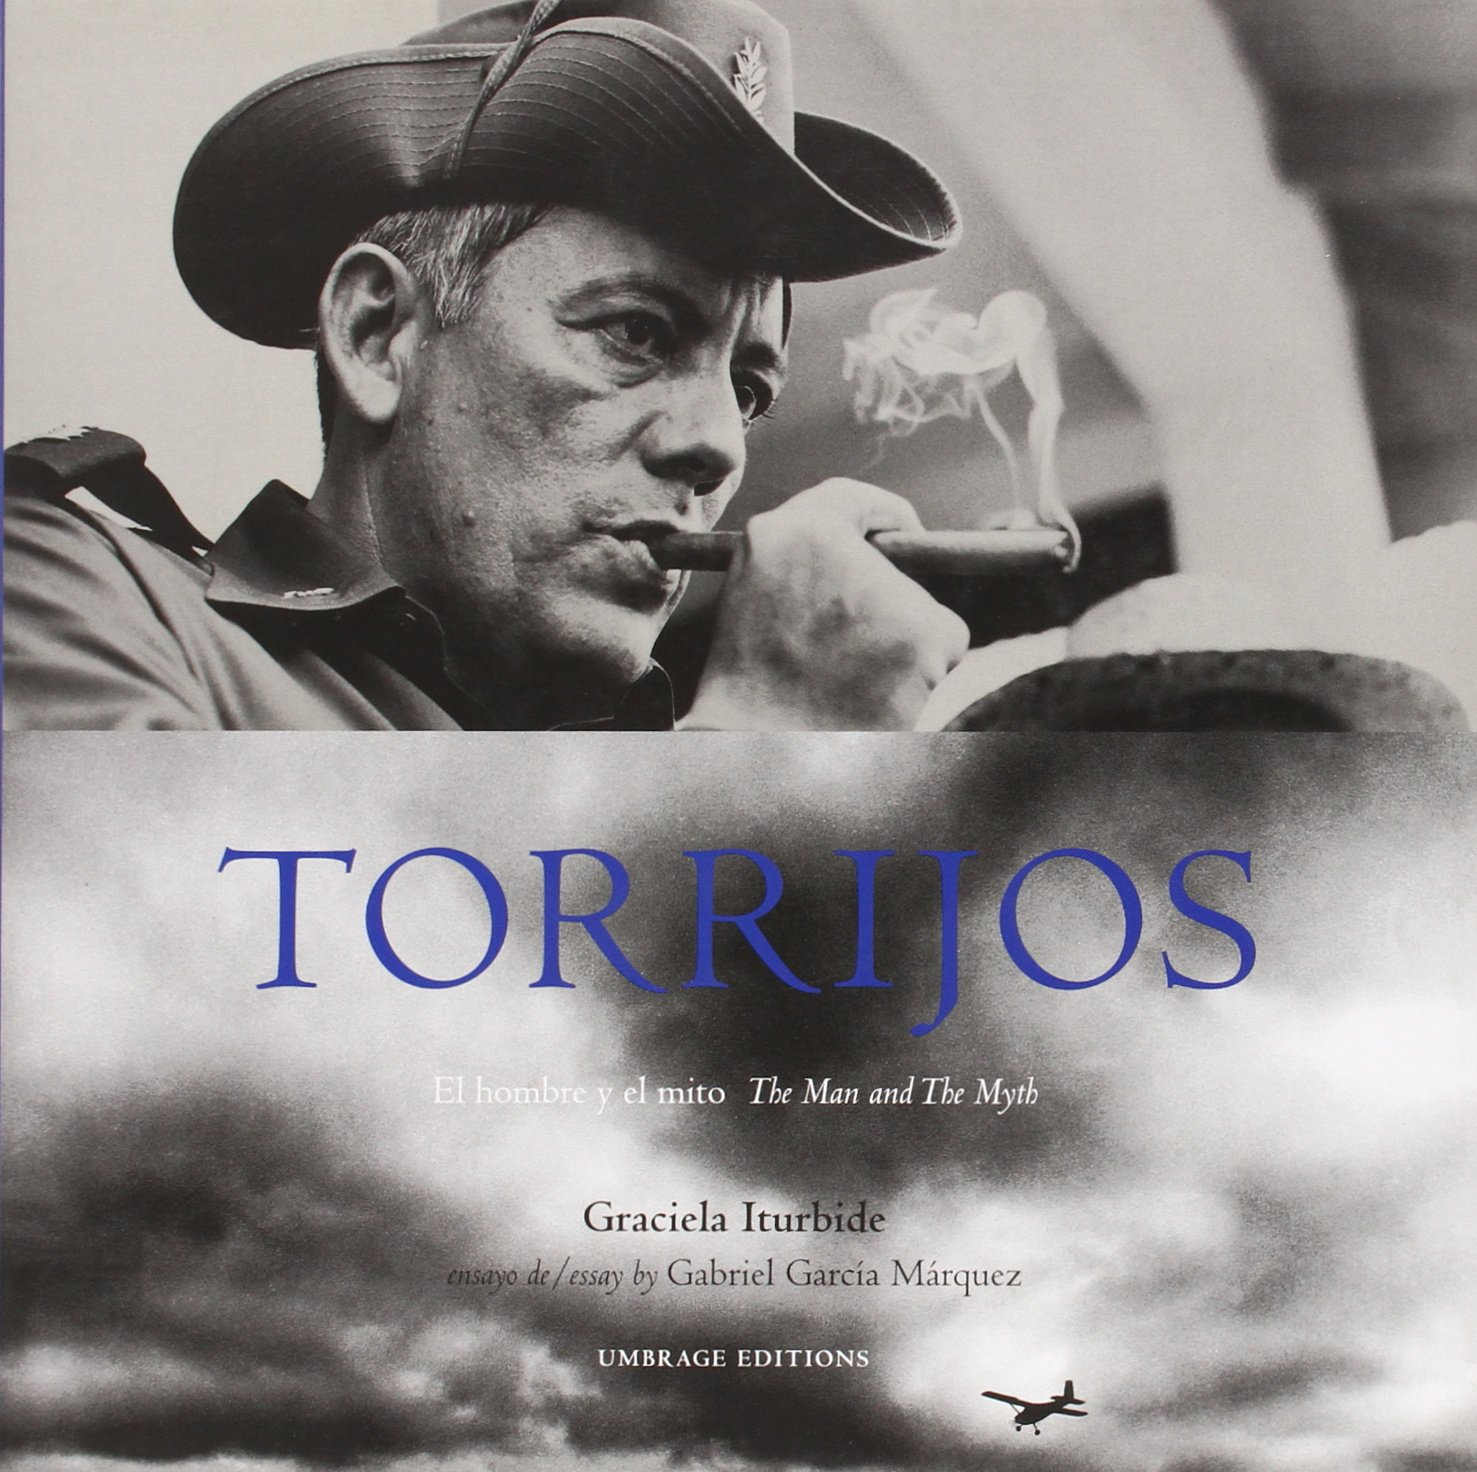 torrijos the man and the myth spanish edition gabriel garcia torrijos the man and the myth spanish edition gabriel garcia marquez graciela iturbide 9781884167683 com books